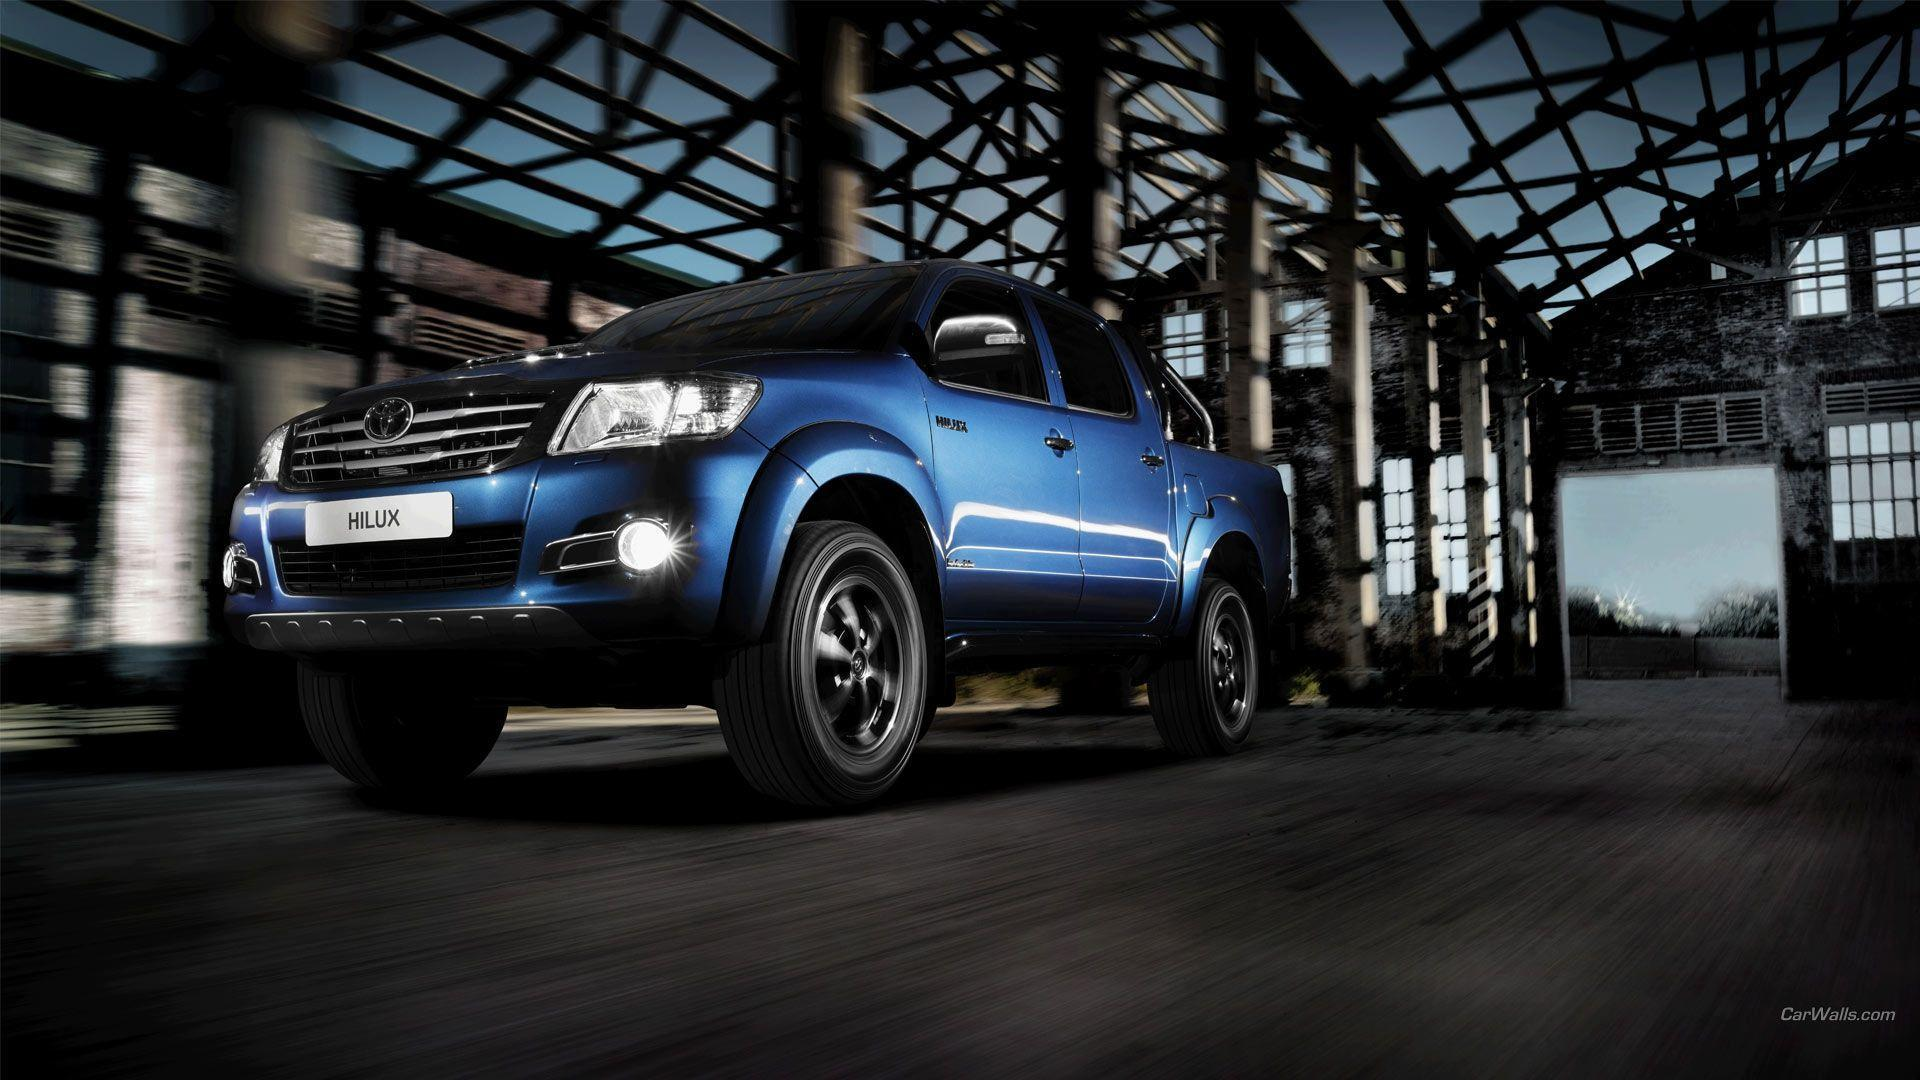 21 Toyota Hilux Wallpapers